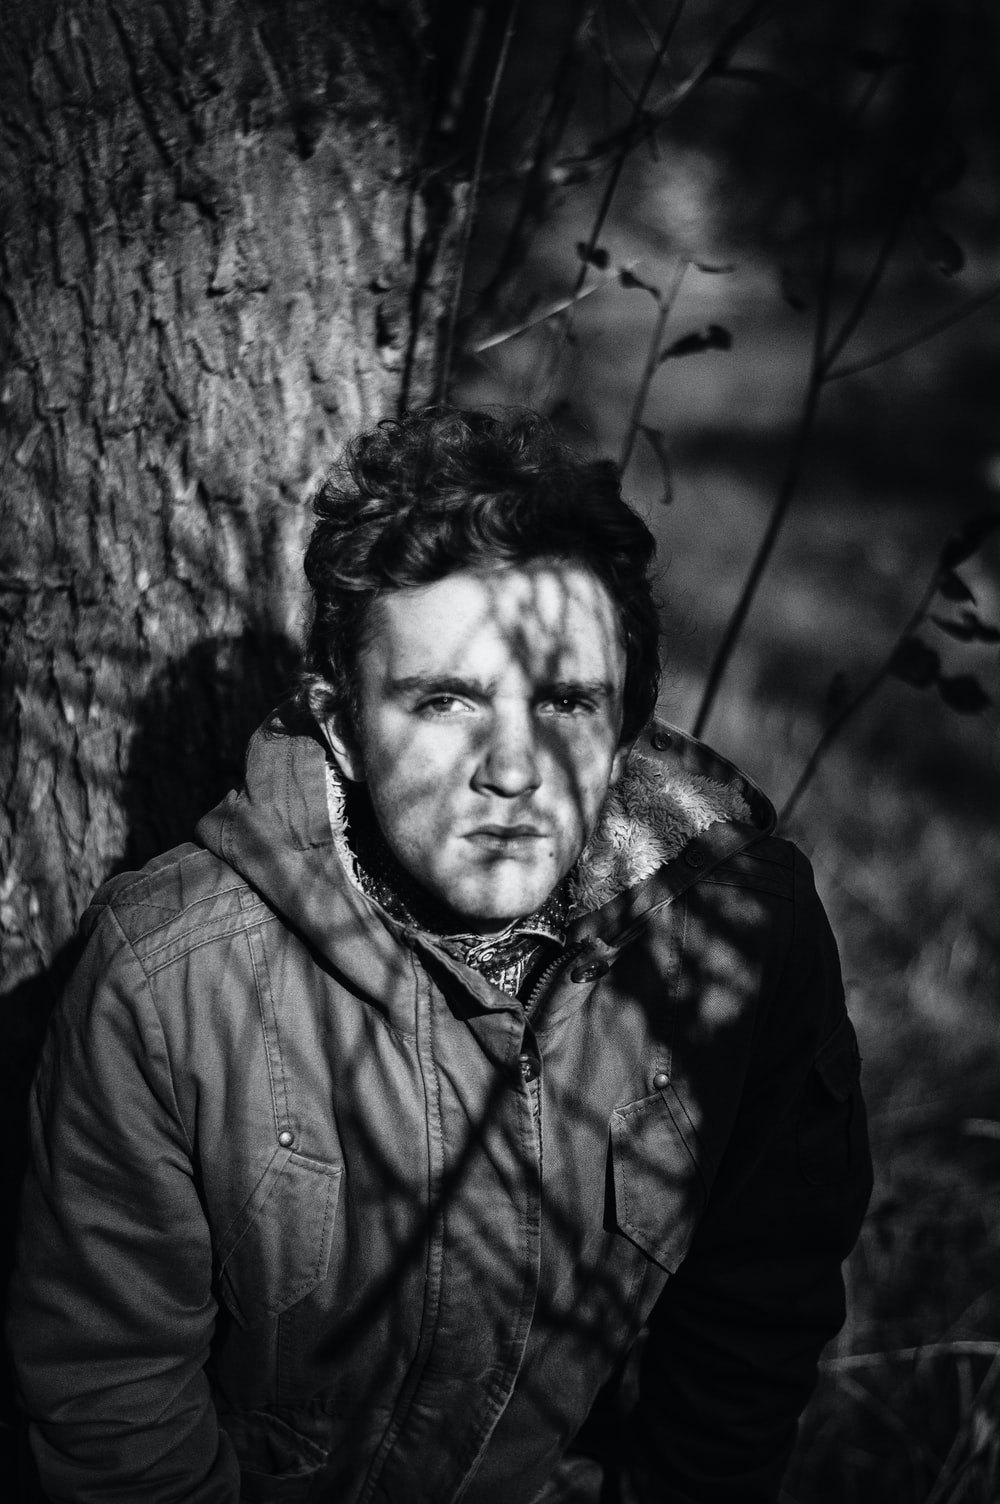 grayscale photo of man under tree